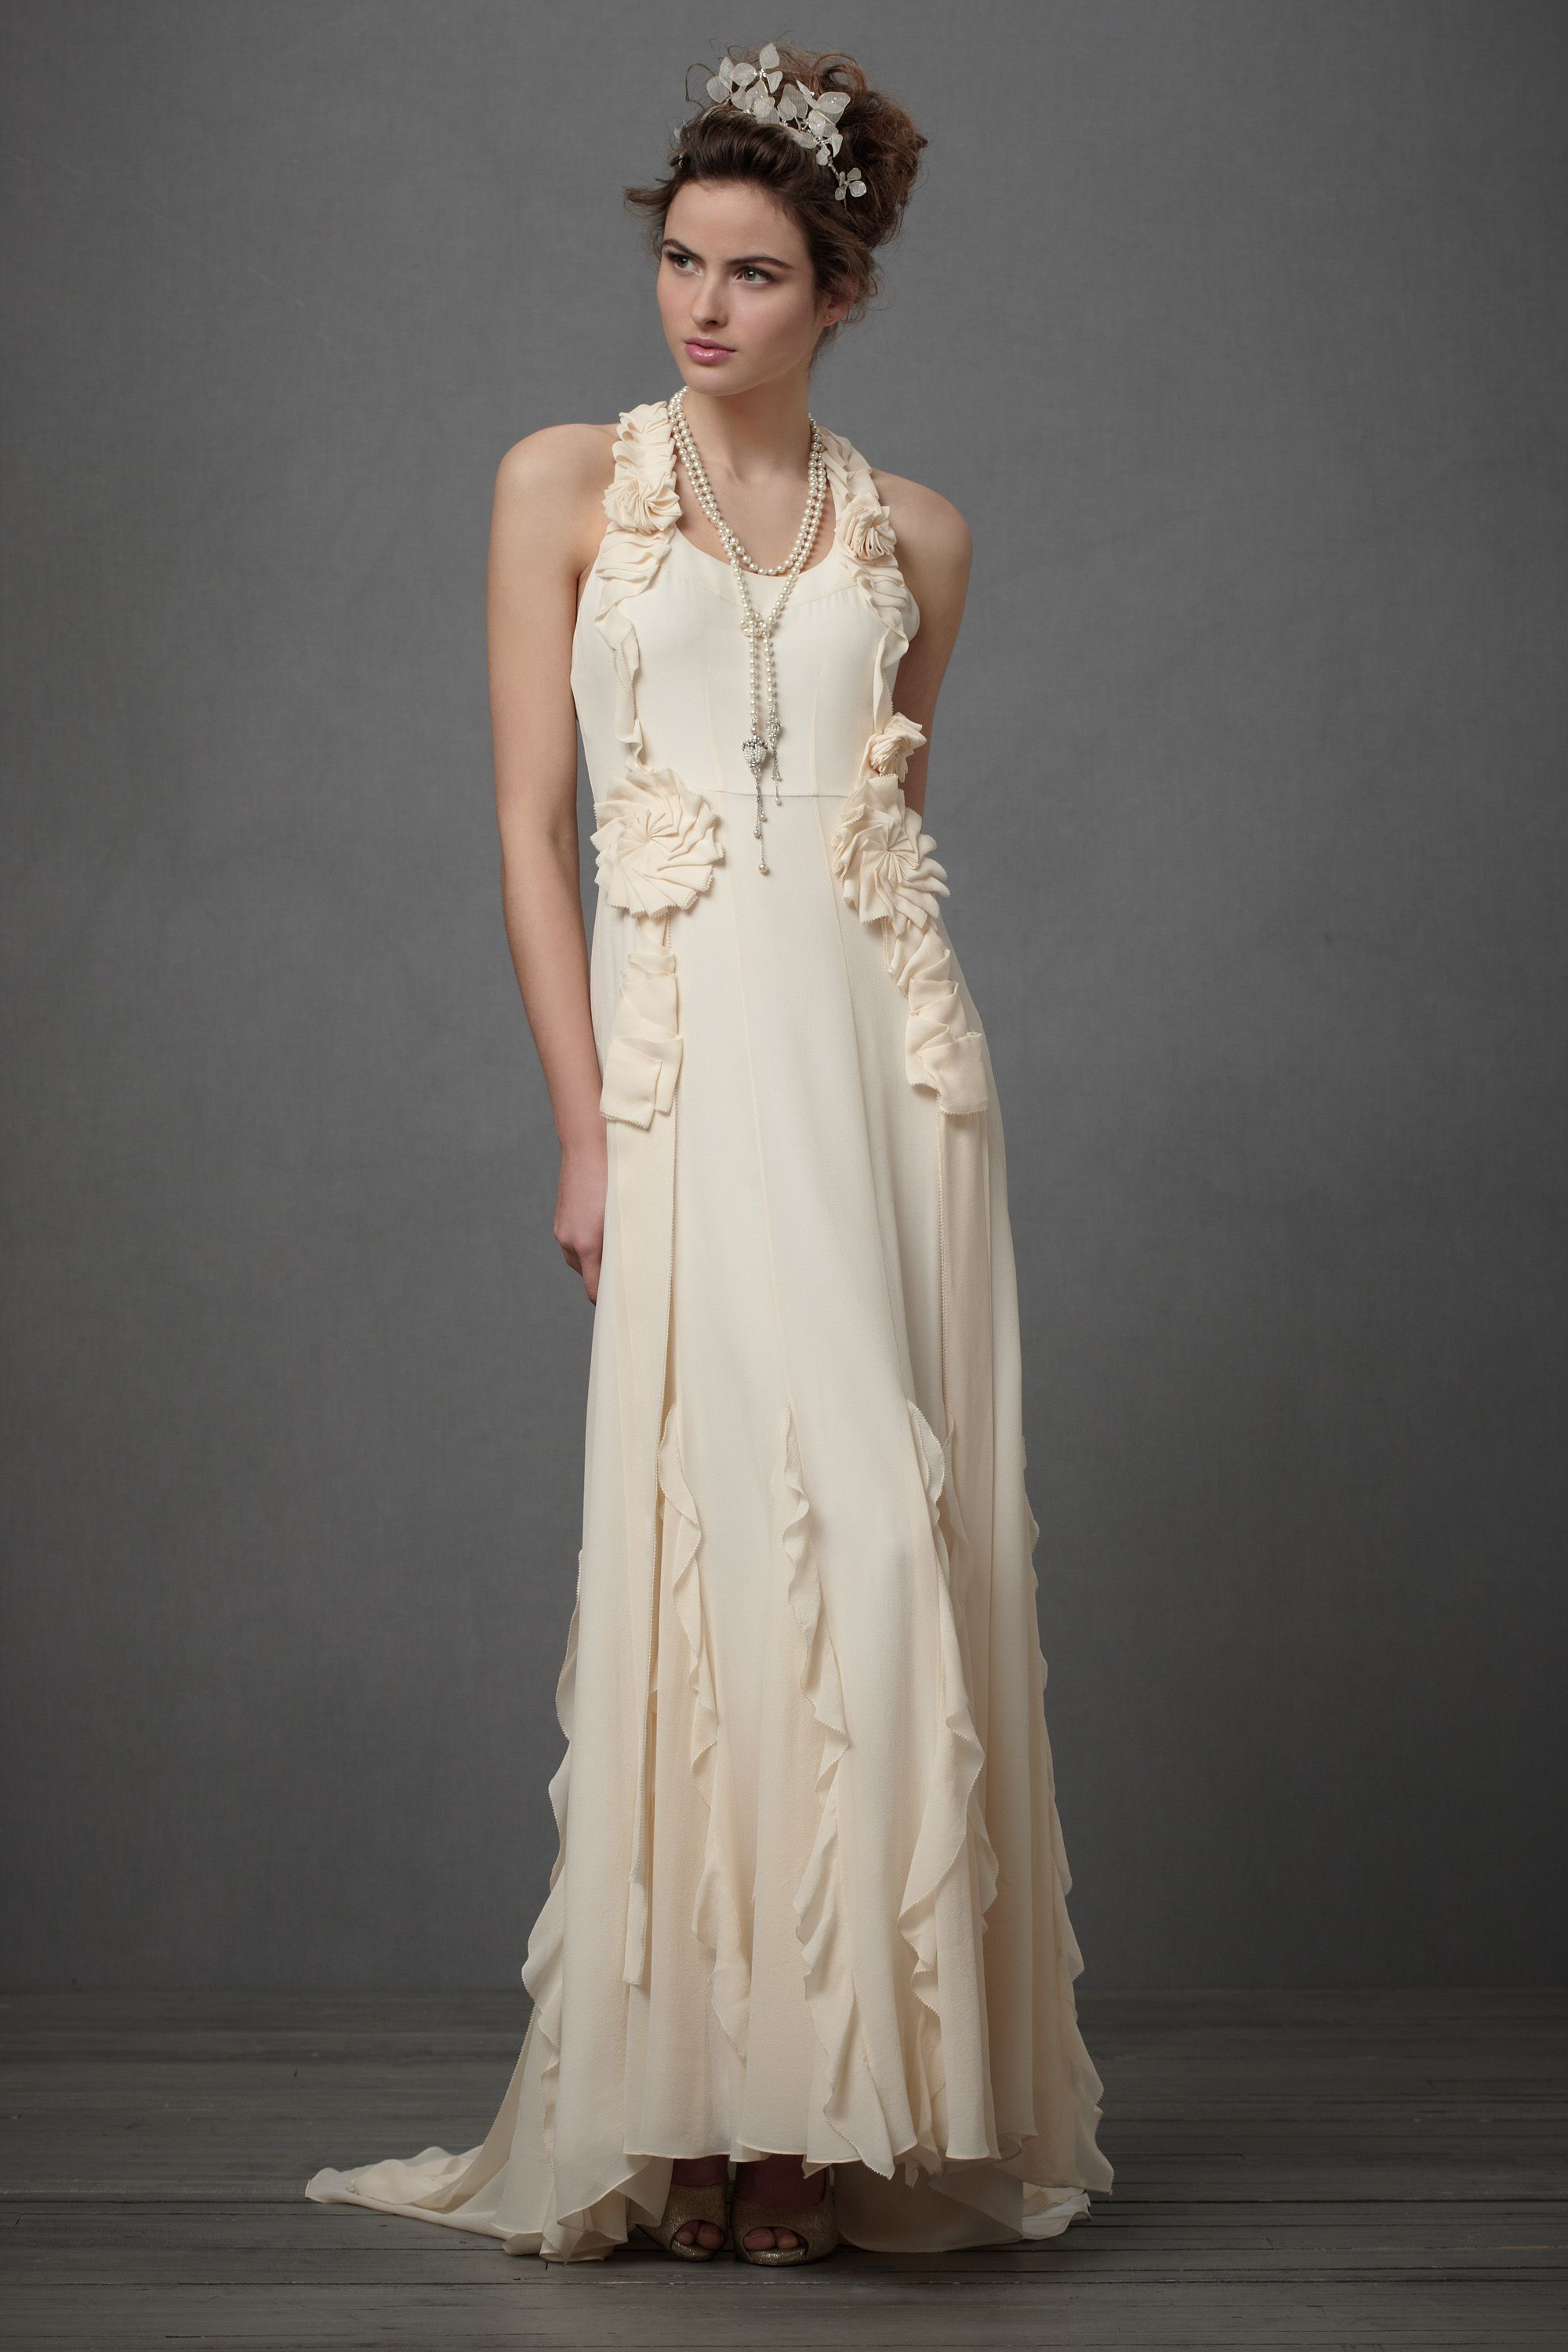 BHLDN Avante Garde Gown customer reviews product